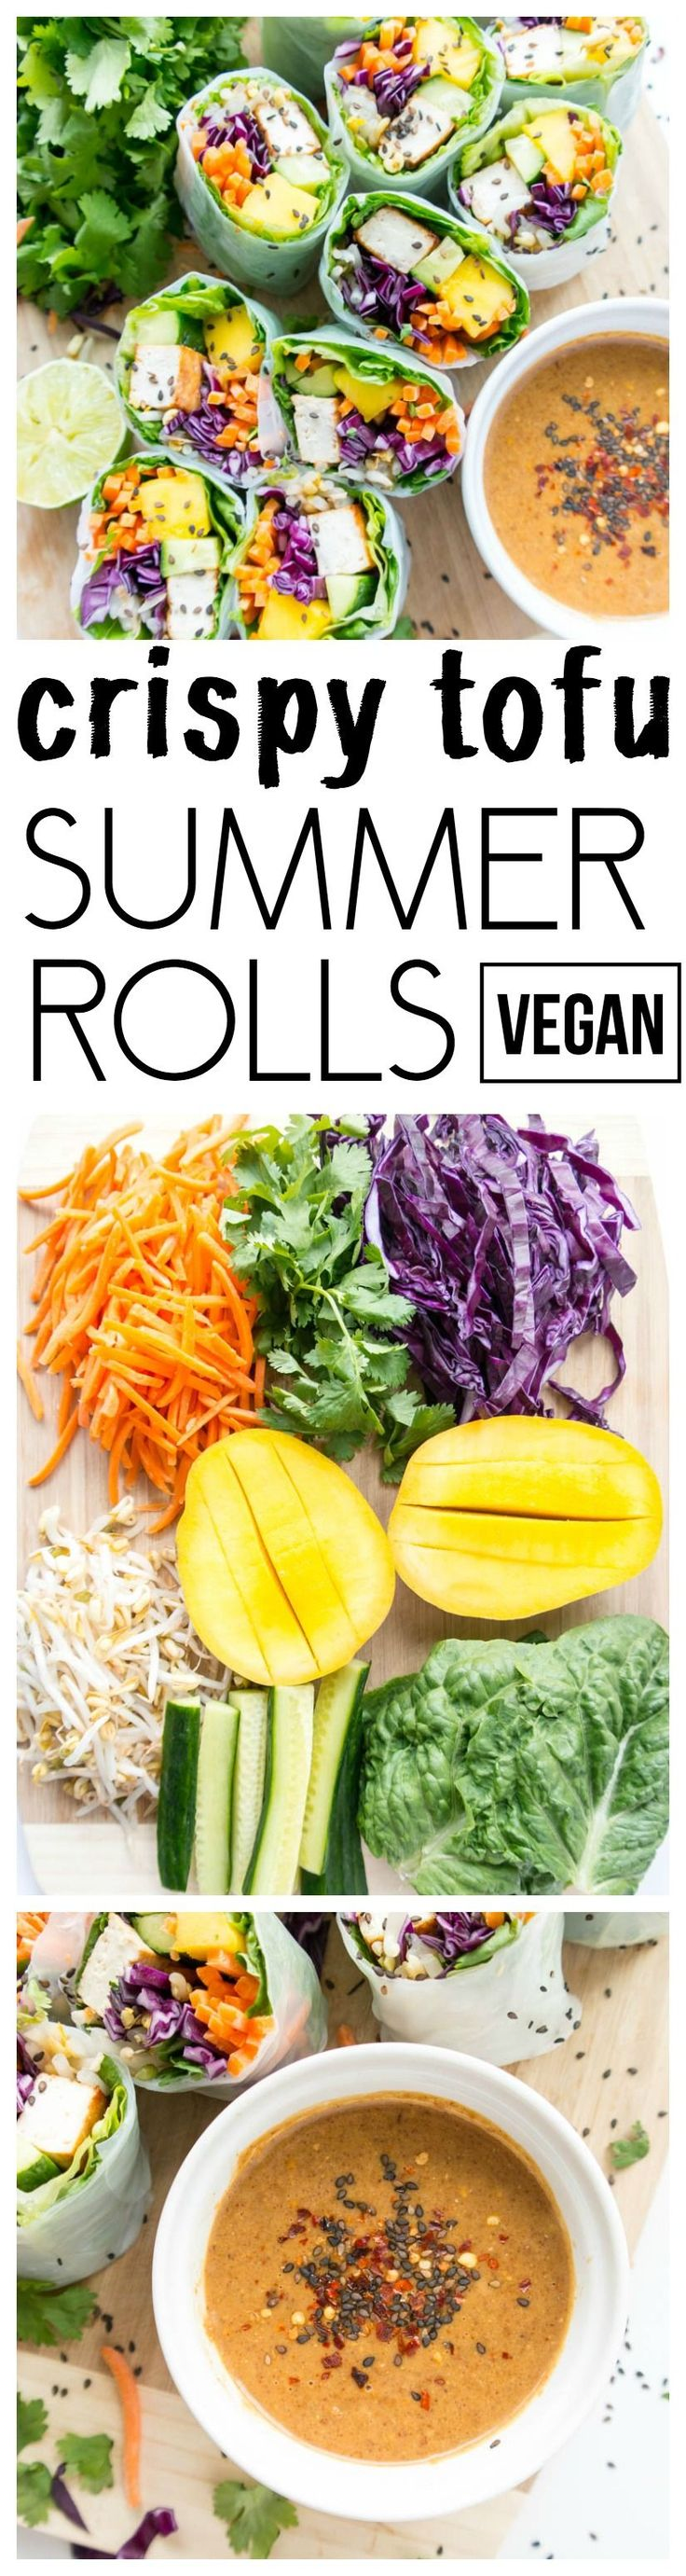 'Tofu Veggie Summer Rolls' with Spicy Almond Butter Sauce. Vegan, Gluten Free, Plant Based. Fresh, light & super healthy with crispy tofu, crunchy veggies, juicy mango & tangy, spicy almond butter dipping sauce! #vegan #summer #rolls